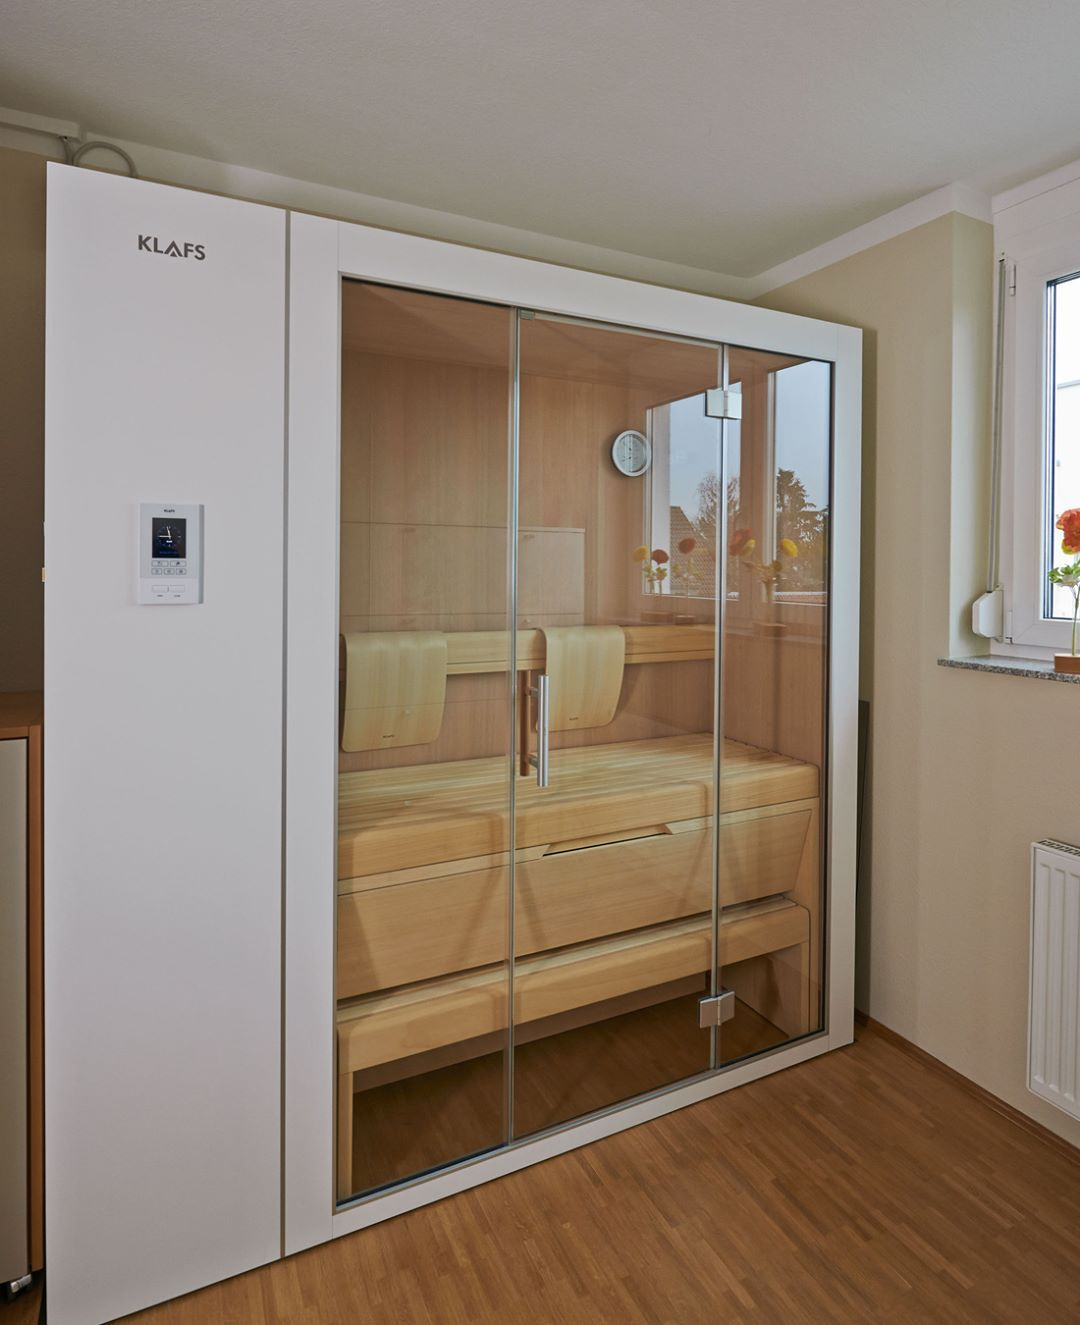 Klafs S1 Sauna S1 Fits Easily Anywhere Klafs Klafsbaltica